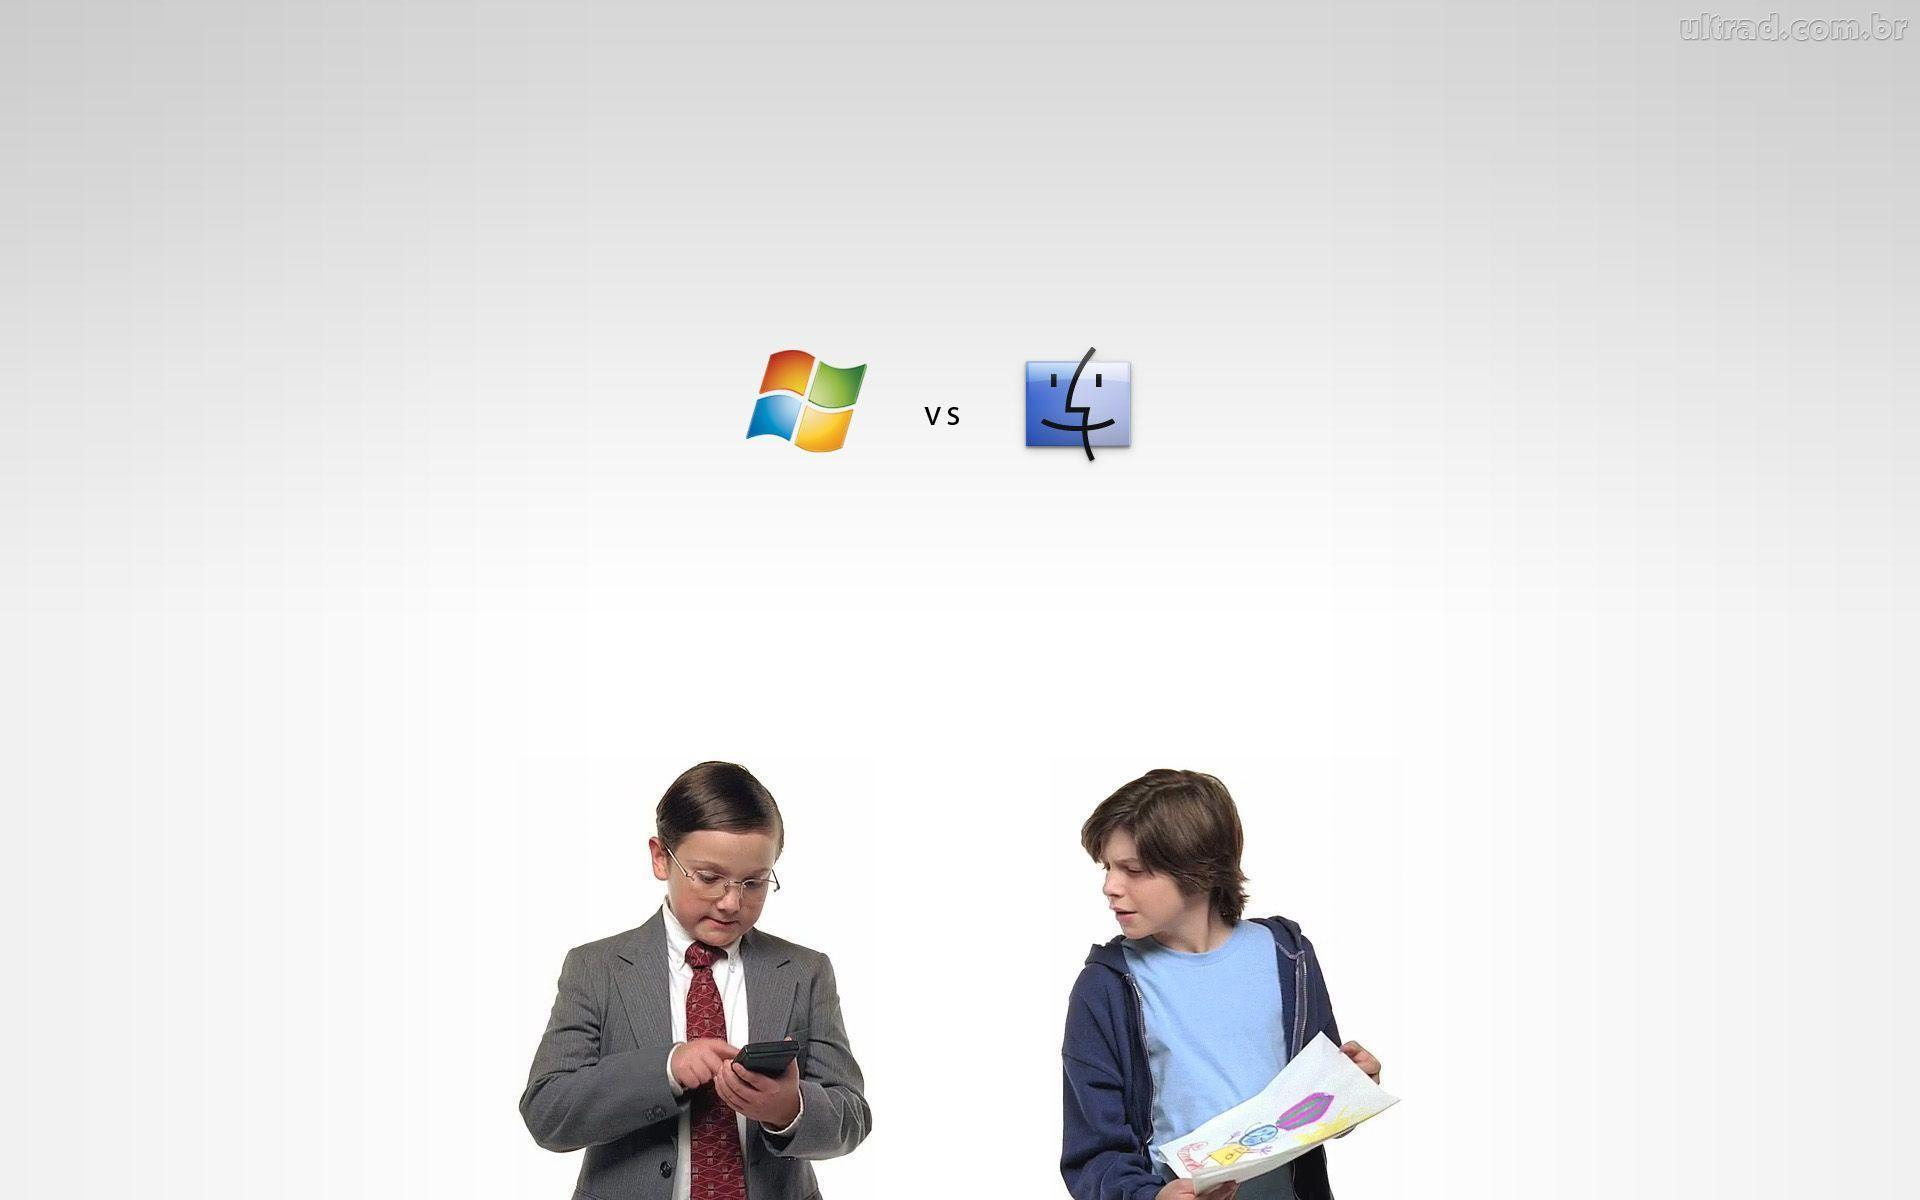 Image For > Mac Vs Windows Wallpapers